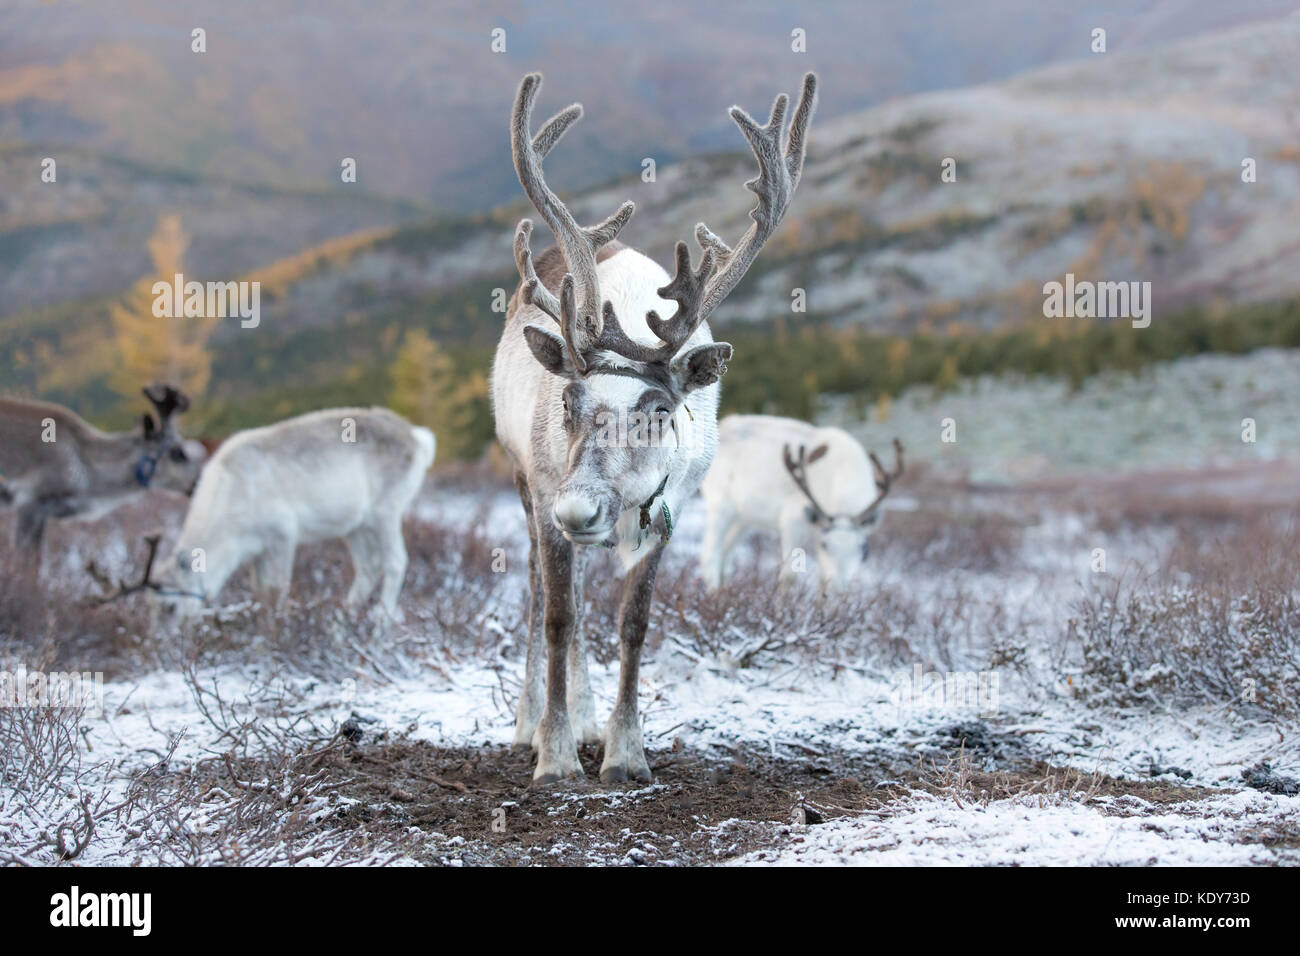 Portrait of a reindeer in its natural taiga habitat on a snowy day. Khuvsgol, Mongolia. - Stock Image